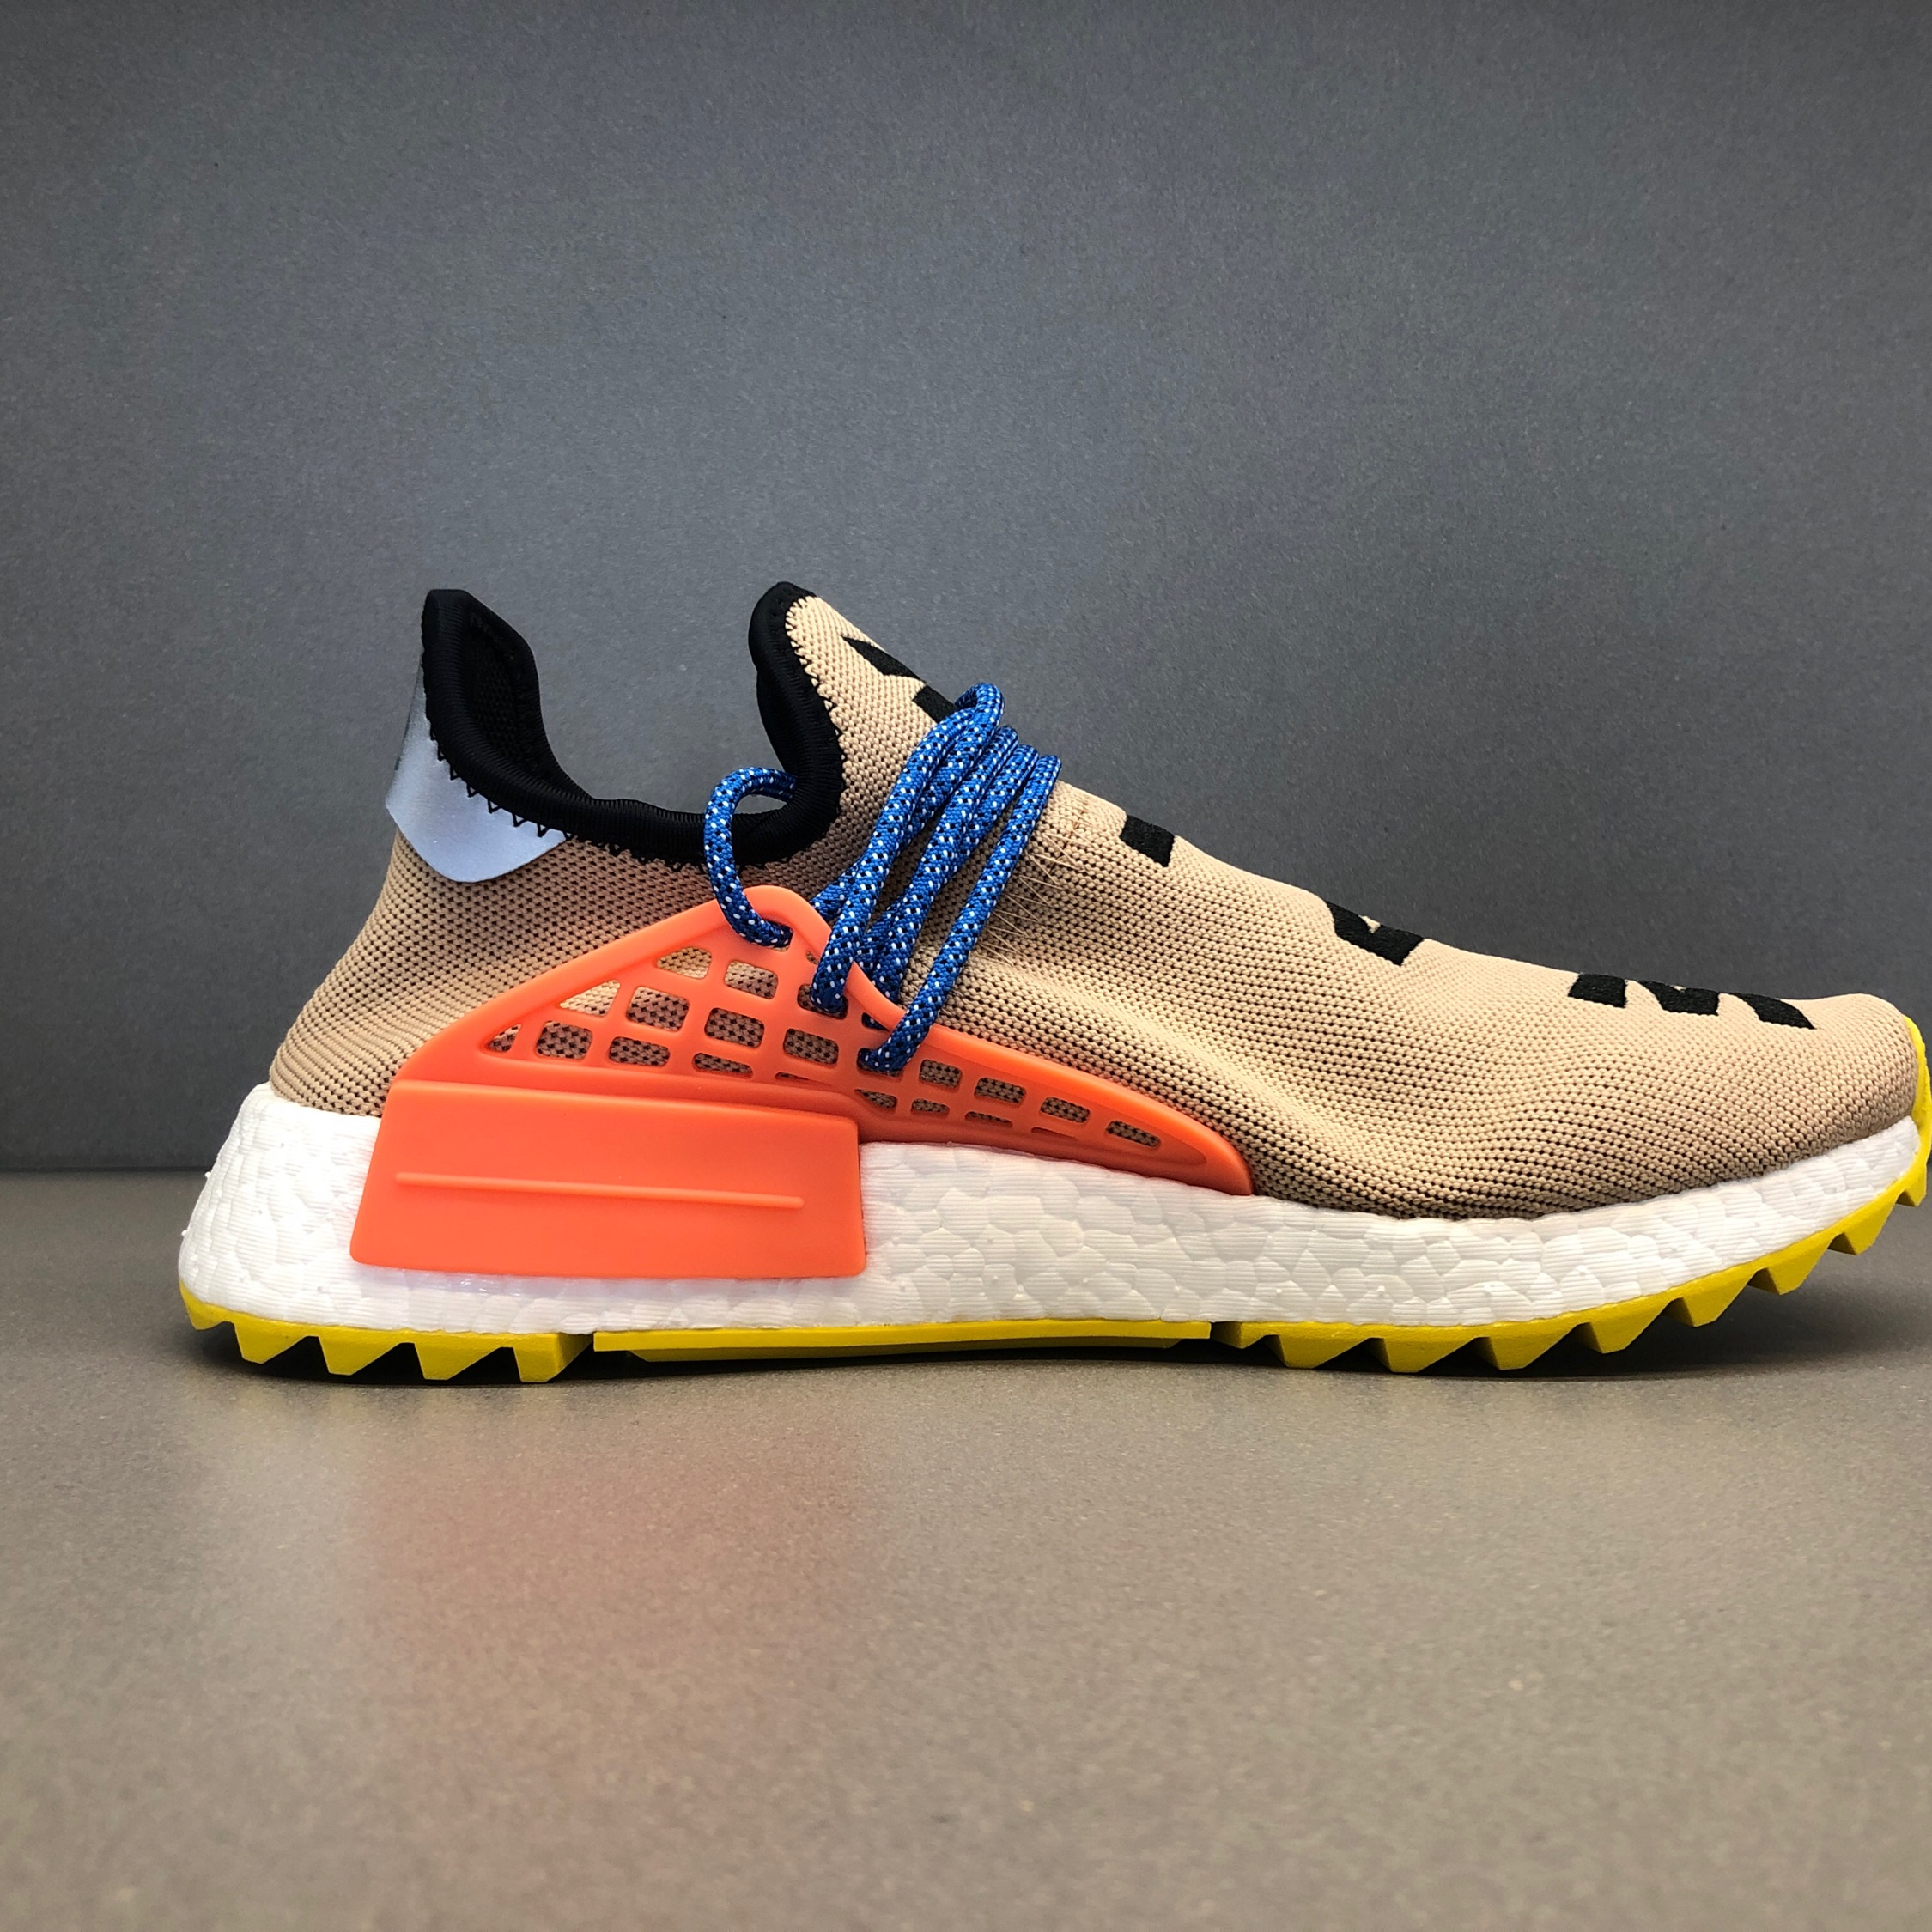 new arrival 78249 a4b46 Adidas Pw Human Race Nmd Tr Pharrell Pale Nude